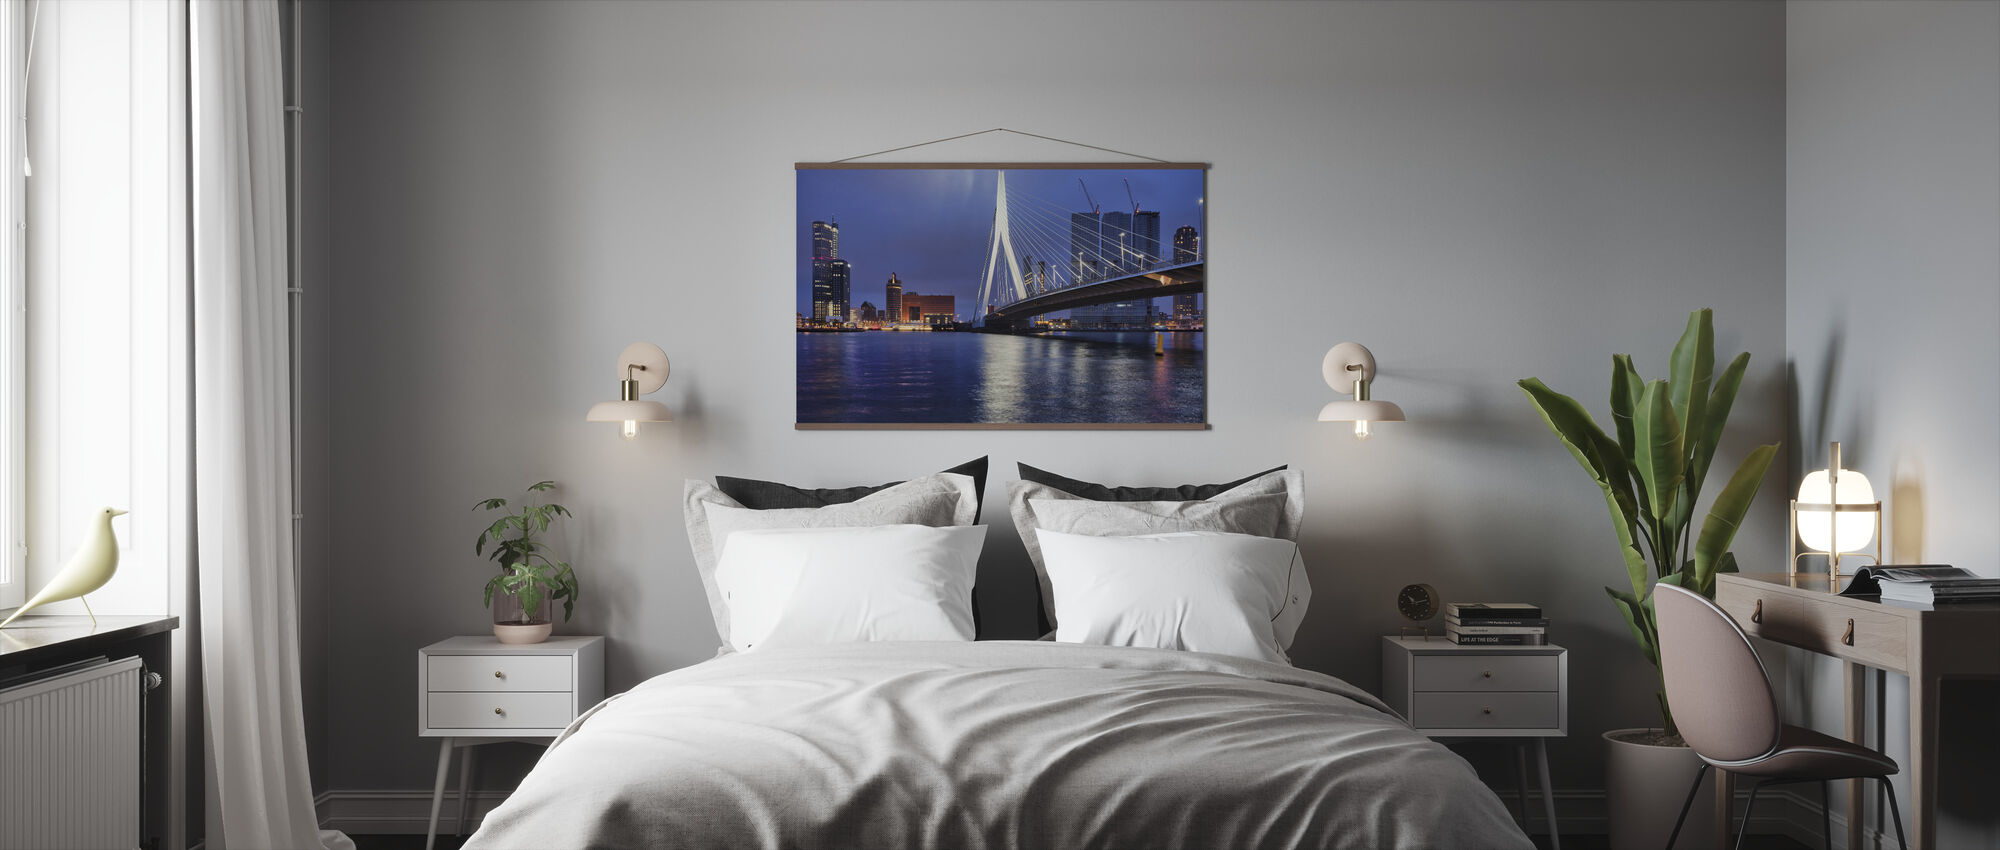 City of Rotterdam at Night - Poster - Bedroom